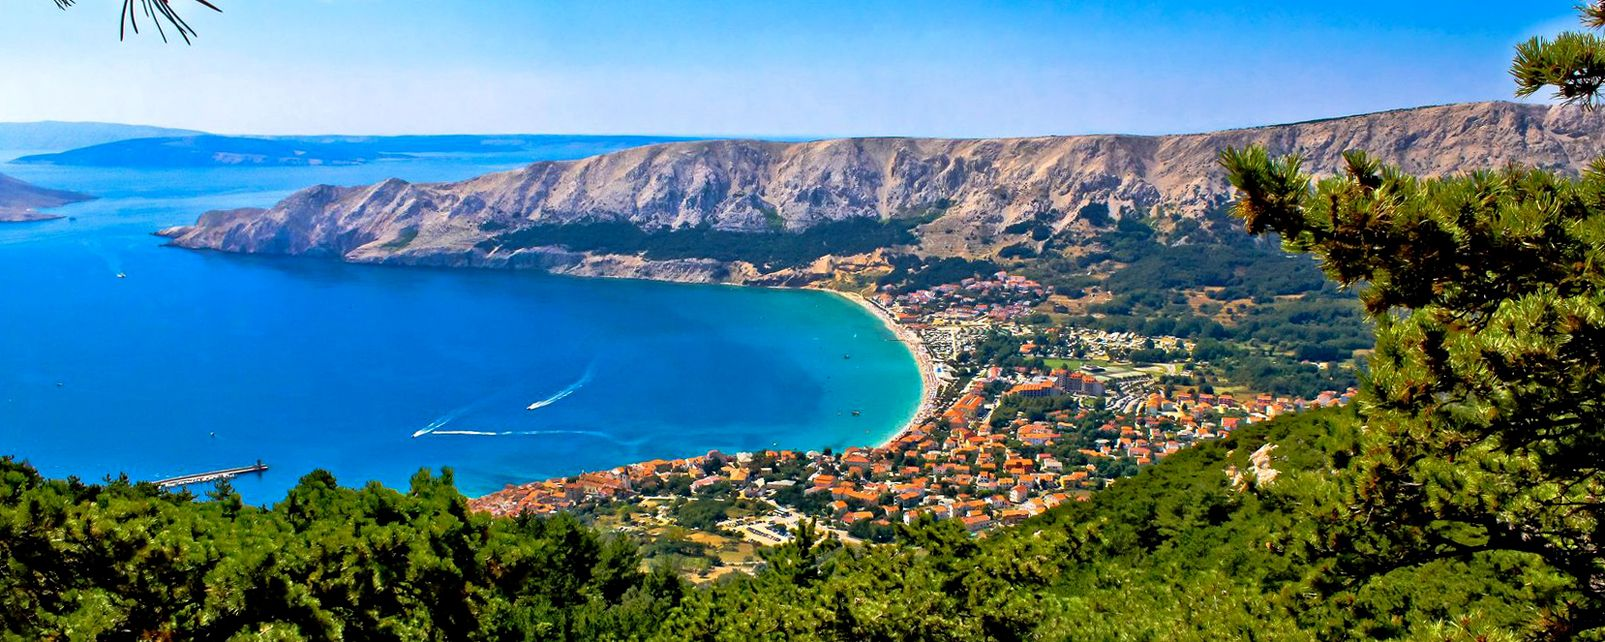 Travel Packages To Croatia From Us